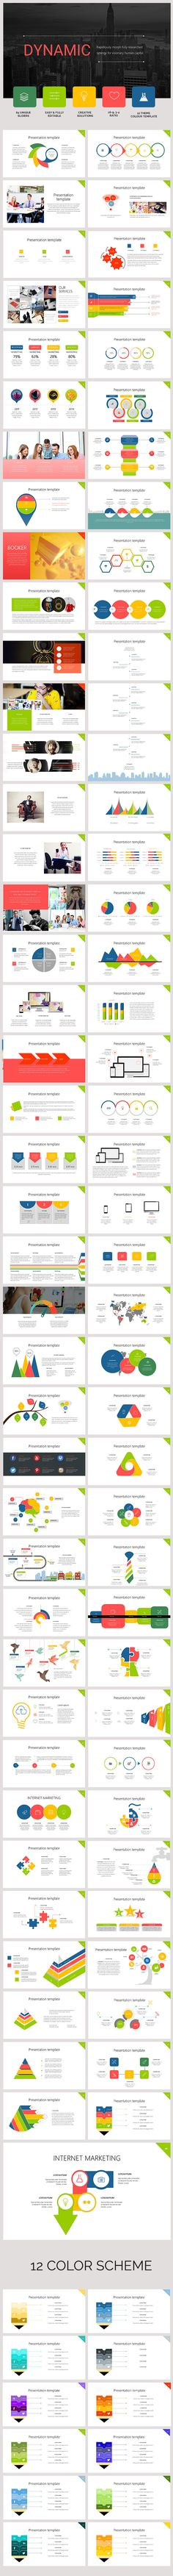 Dinamic PowerPoint Template #powerpoint #powerpointtemplate #presentation…